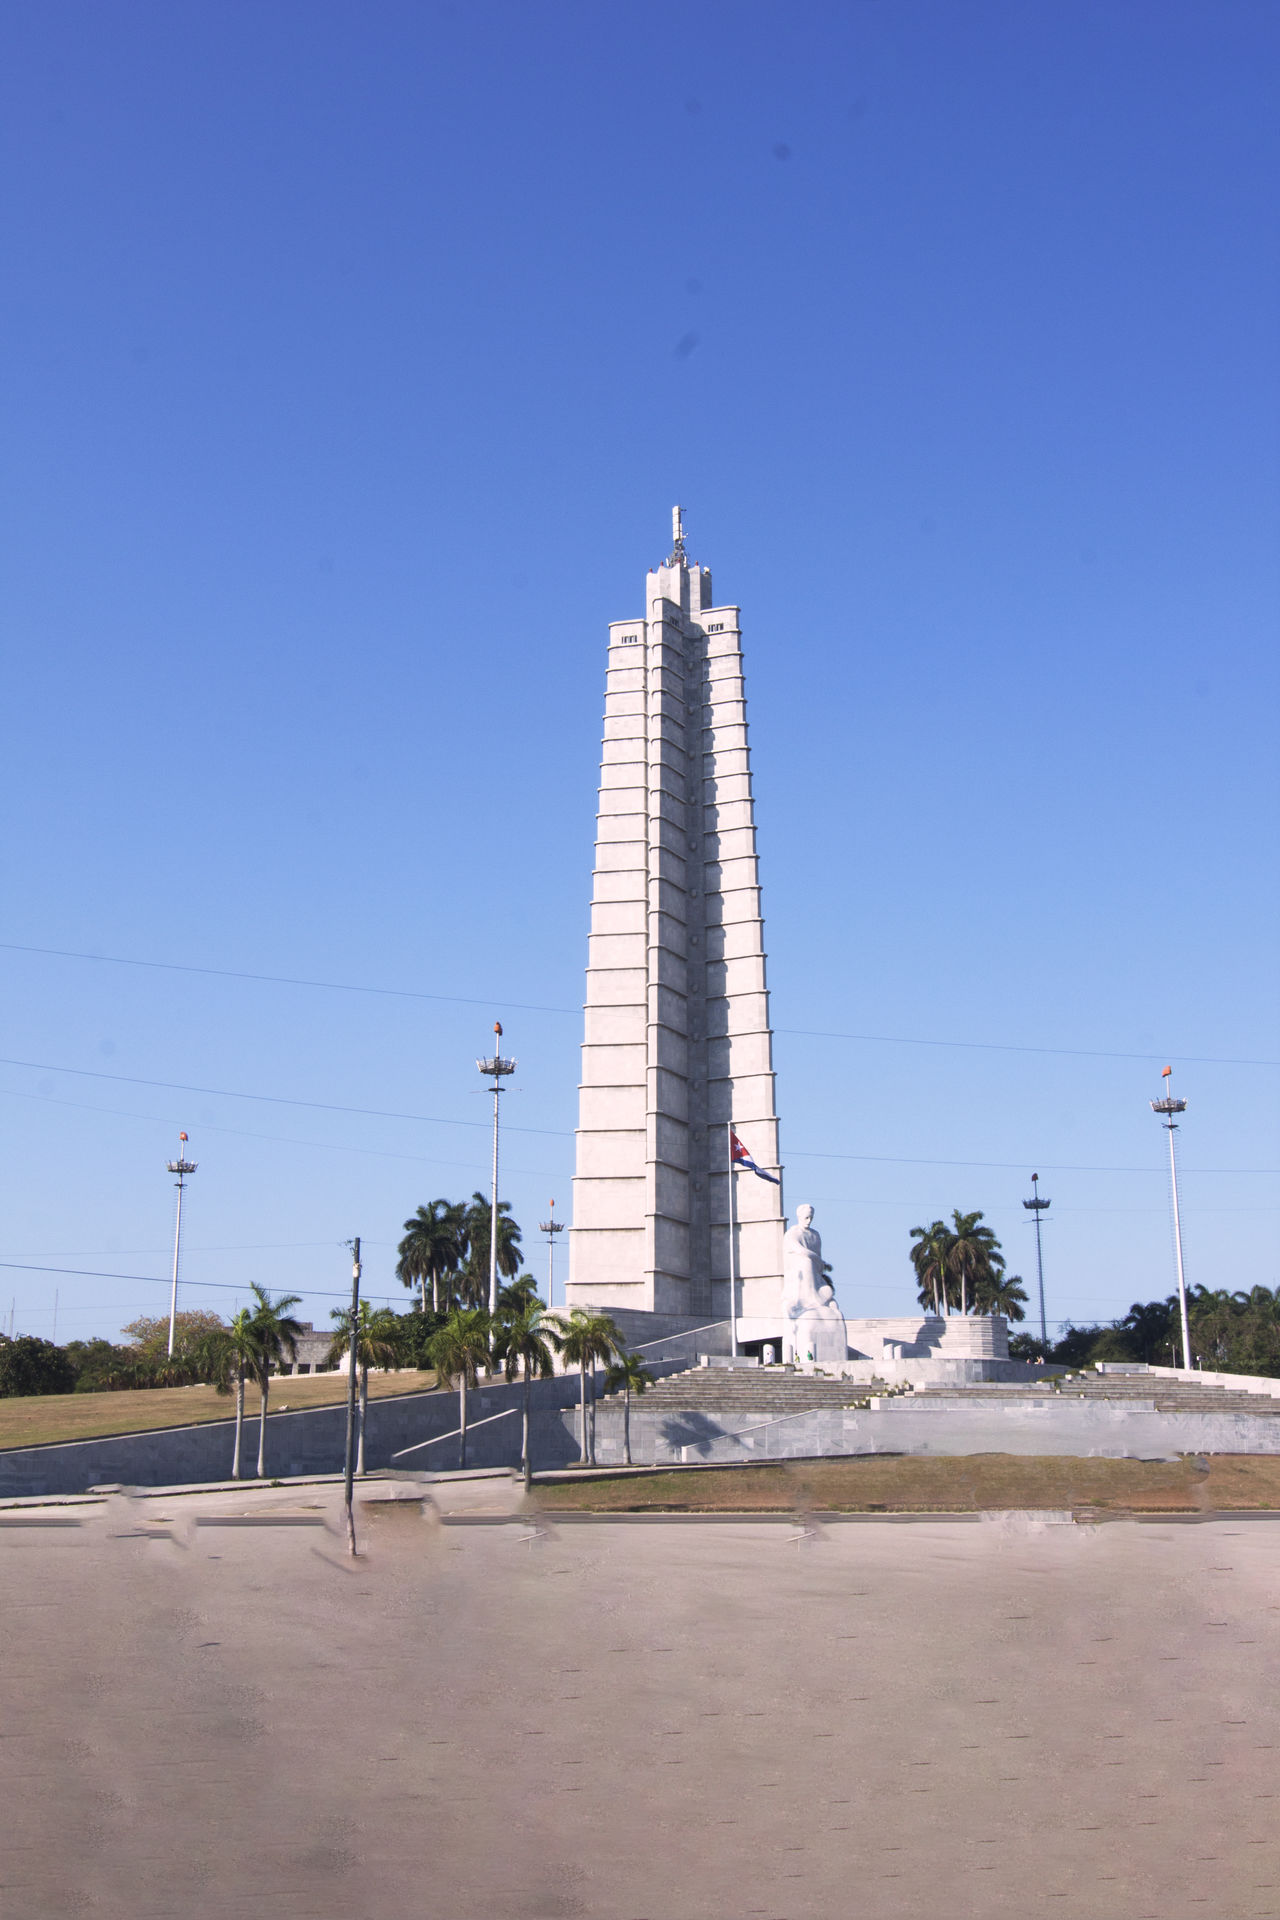 monument to josè martha square of the revolution of havana cuba Architecture Blue Building Exterior Built Structure City Clear Sky Day Jose, Havana, Marti, Revolution, Architecture, Habana, Monument, Cuban, Cuba, Liberty, National, Independence, Symbol, Revolutionary, Statue, Plaza, Revolucion, America,Monument To Josè Marty, Revolutionary, Square, Revolution, Havana, Cuba, Memory, Height, Tower, Monument, Tourism, Travel Low Angle View Nature No People Outdoors Sky Tree